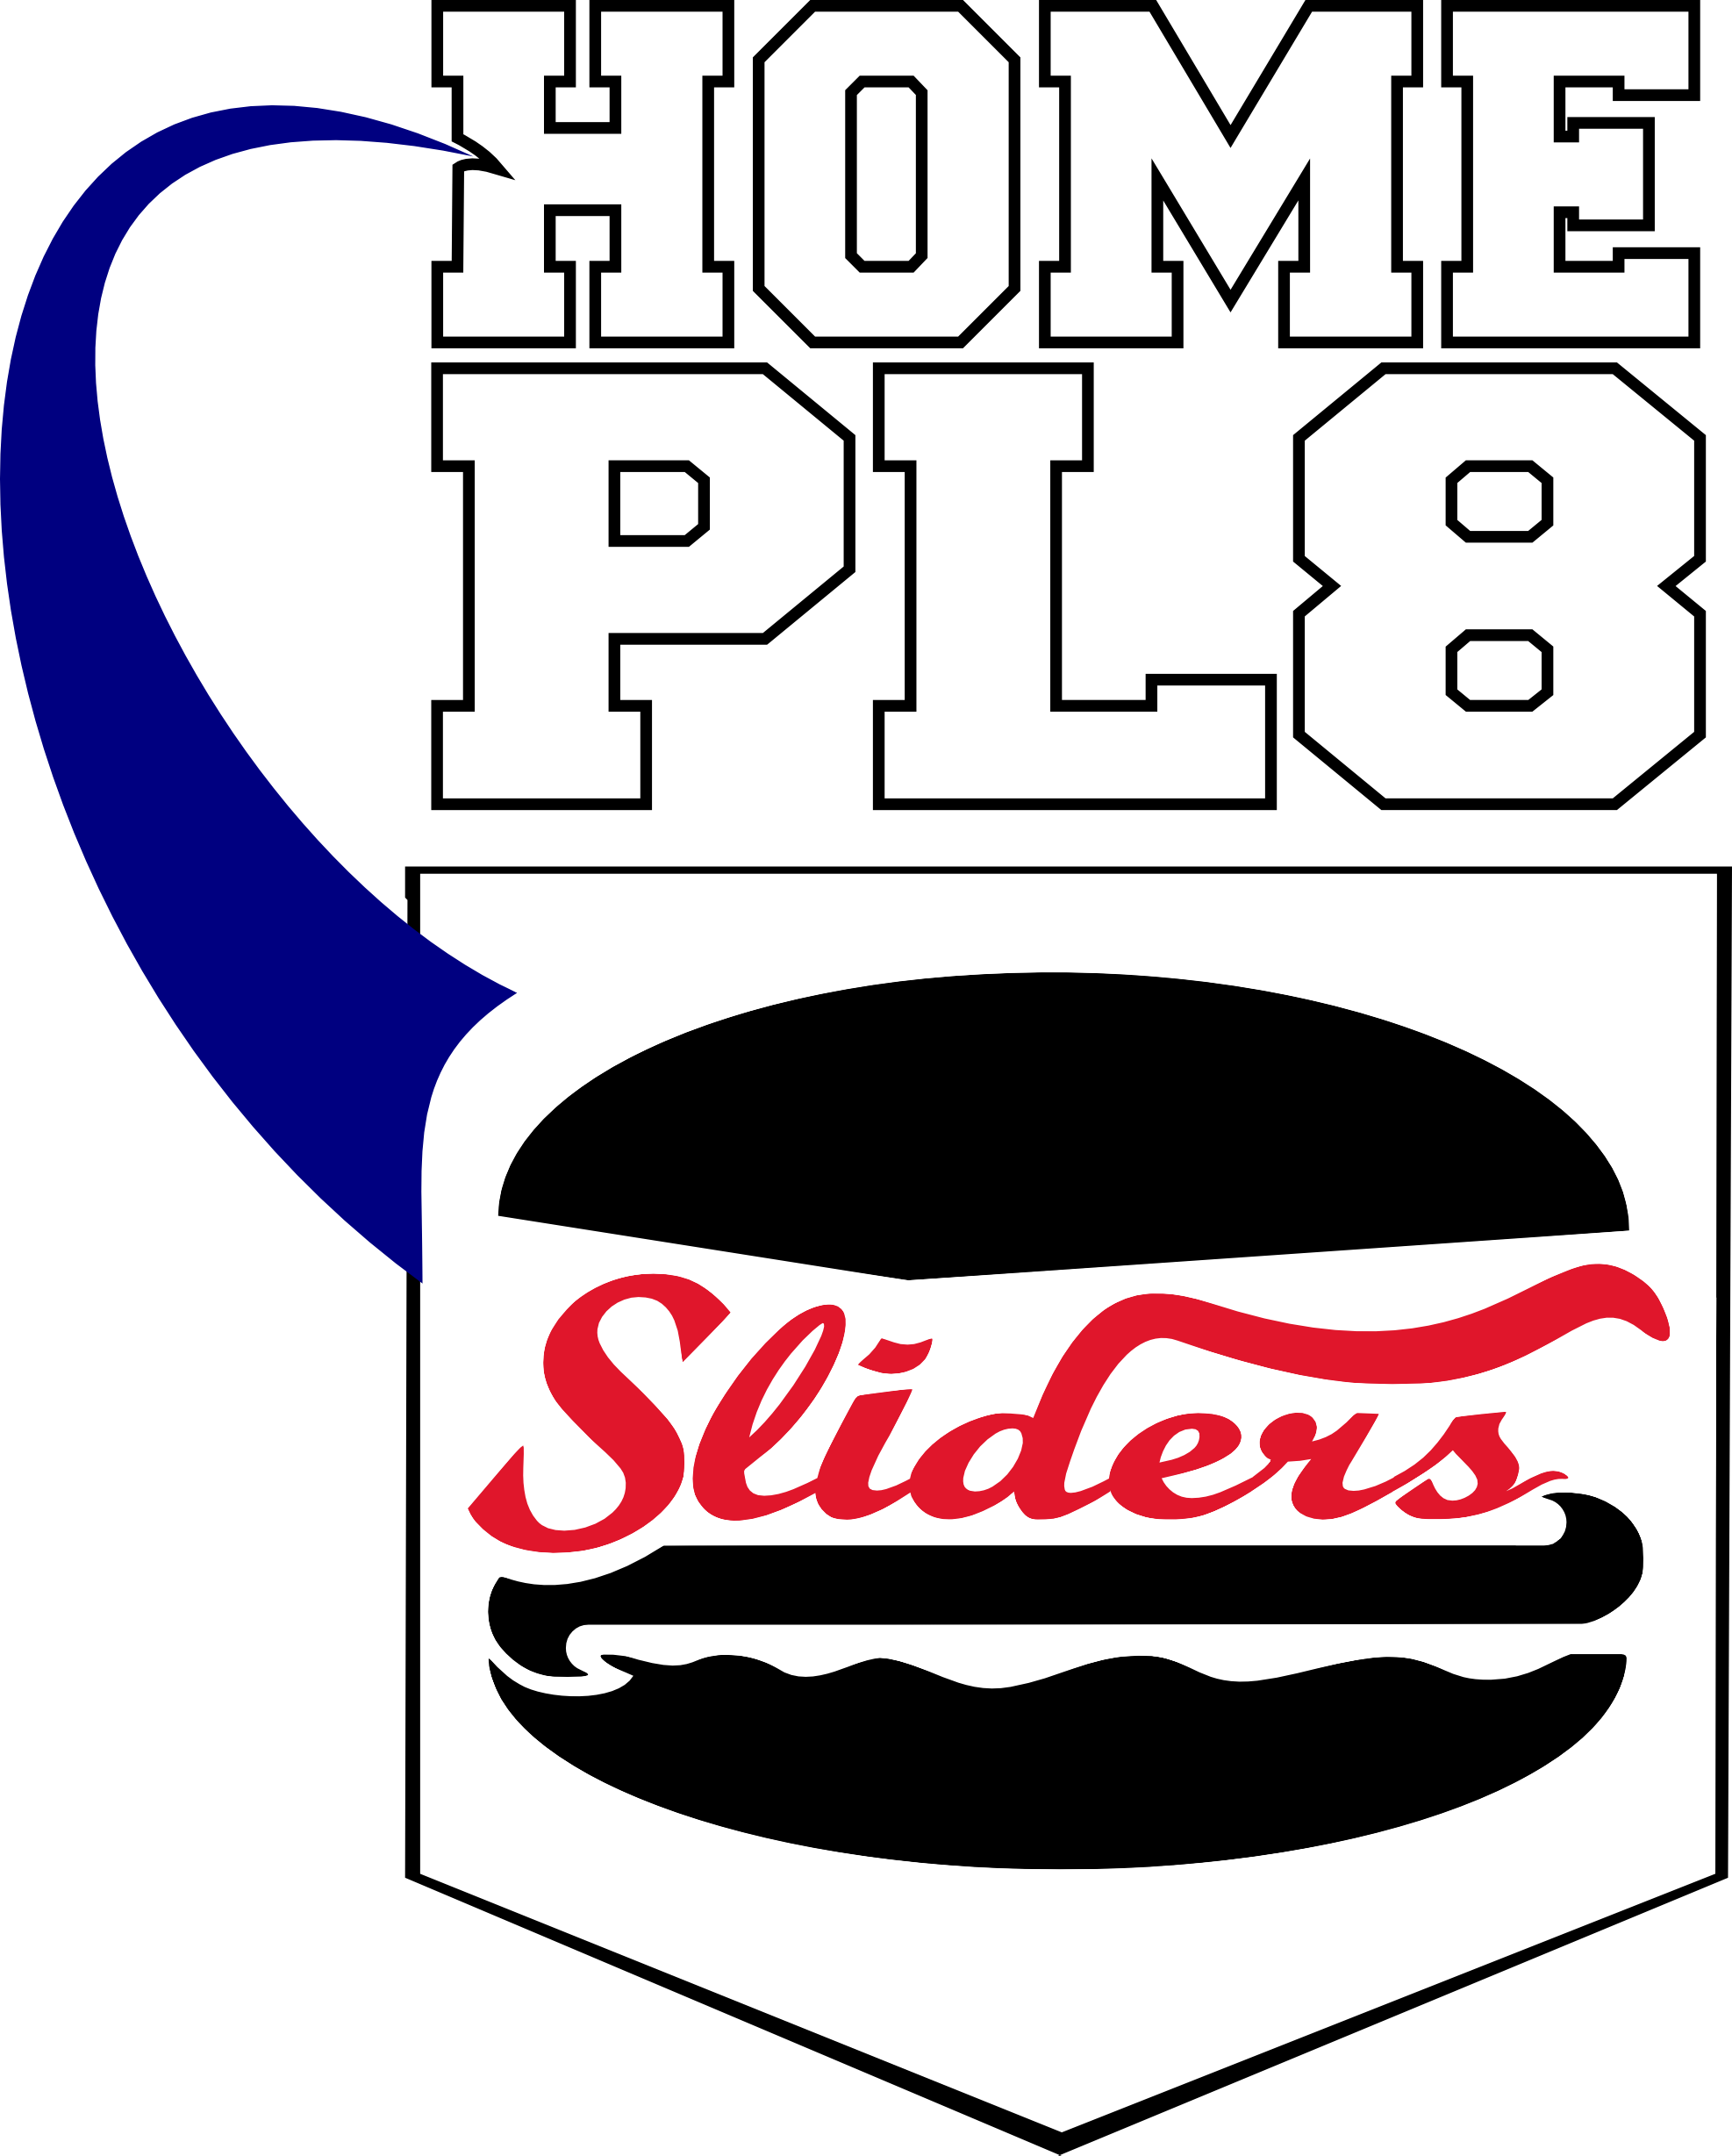 Baseball home base clipart picture royalty free stock Home Plate Sliders picture royalty free stock